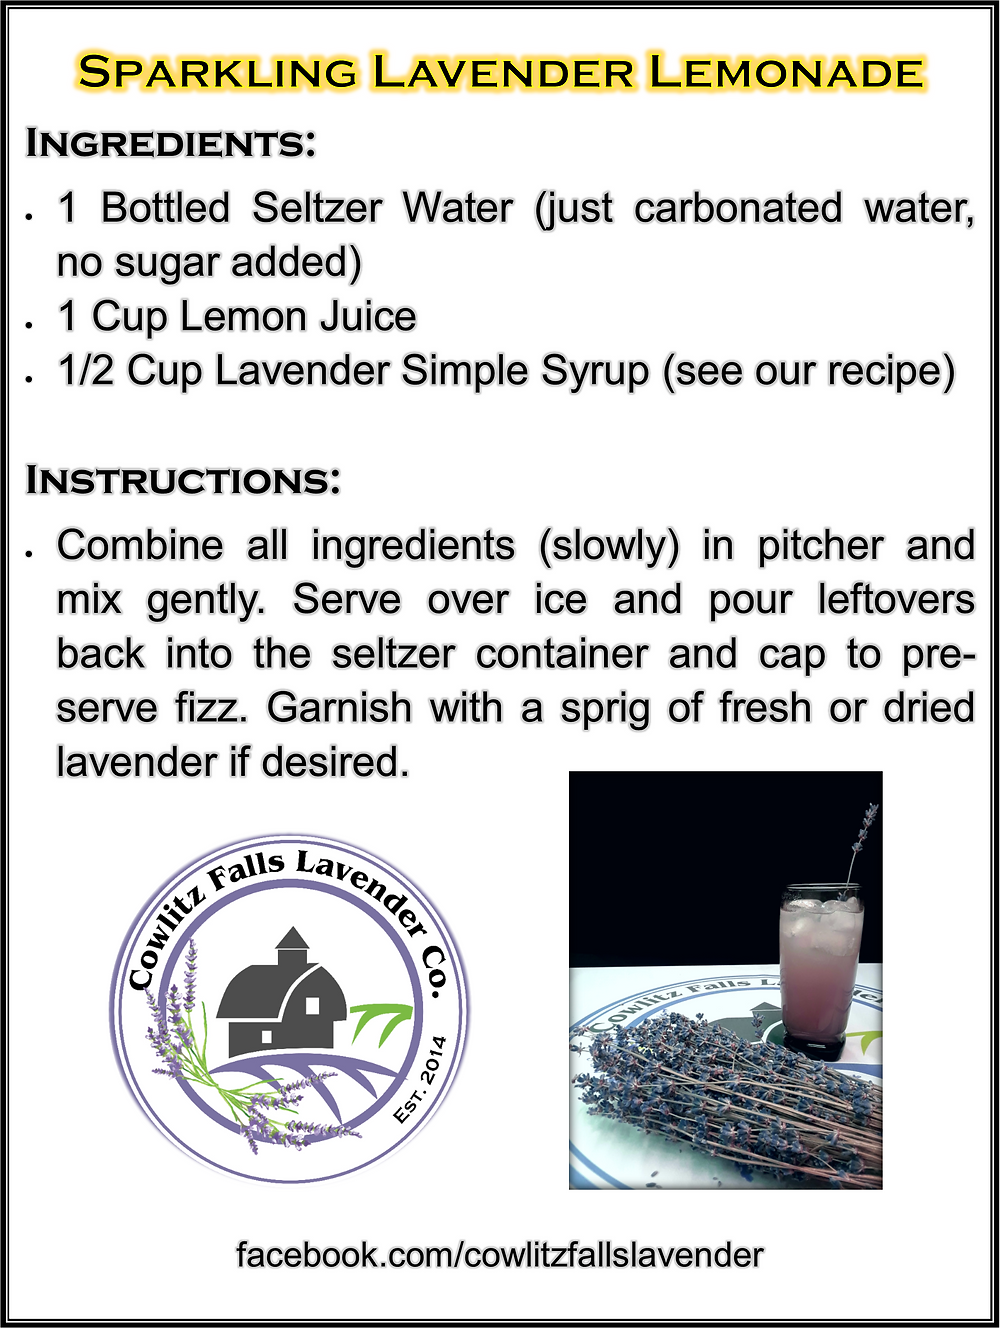 Check out this awesome lemonade recipe, see our recipe for making the simple syrup as well.